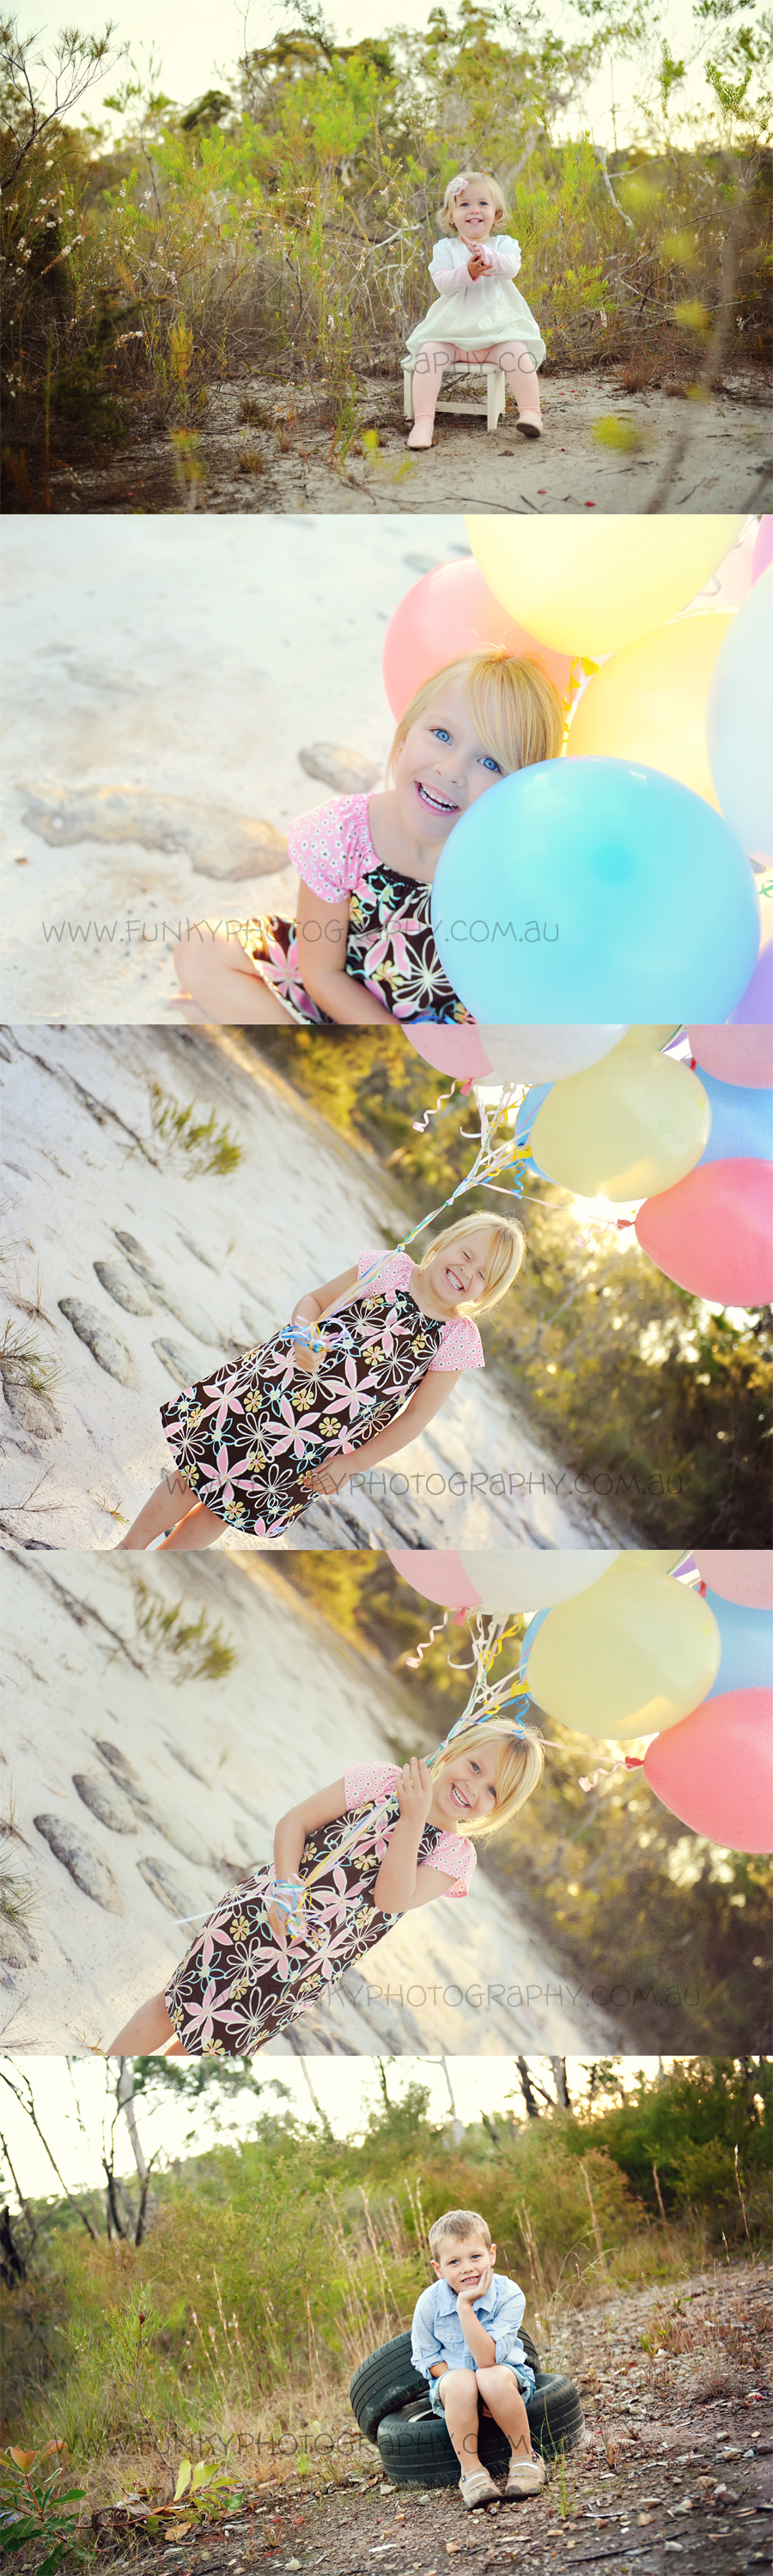 photos of children with balloons